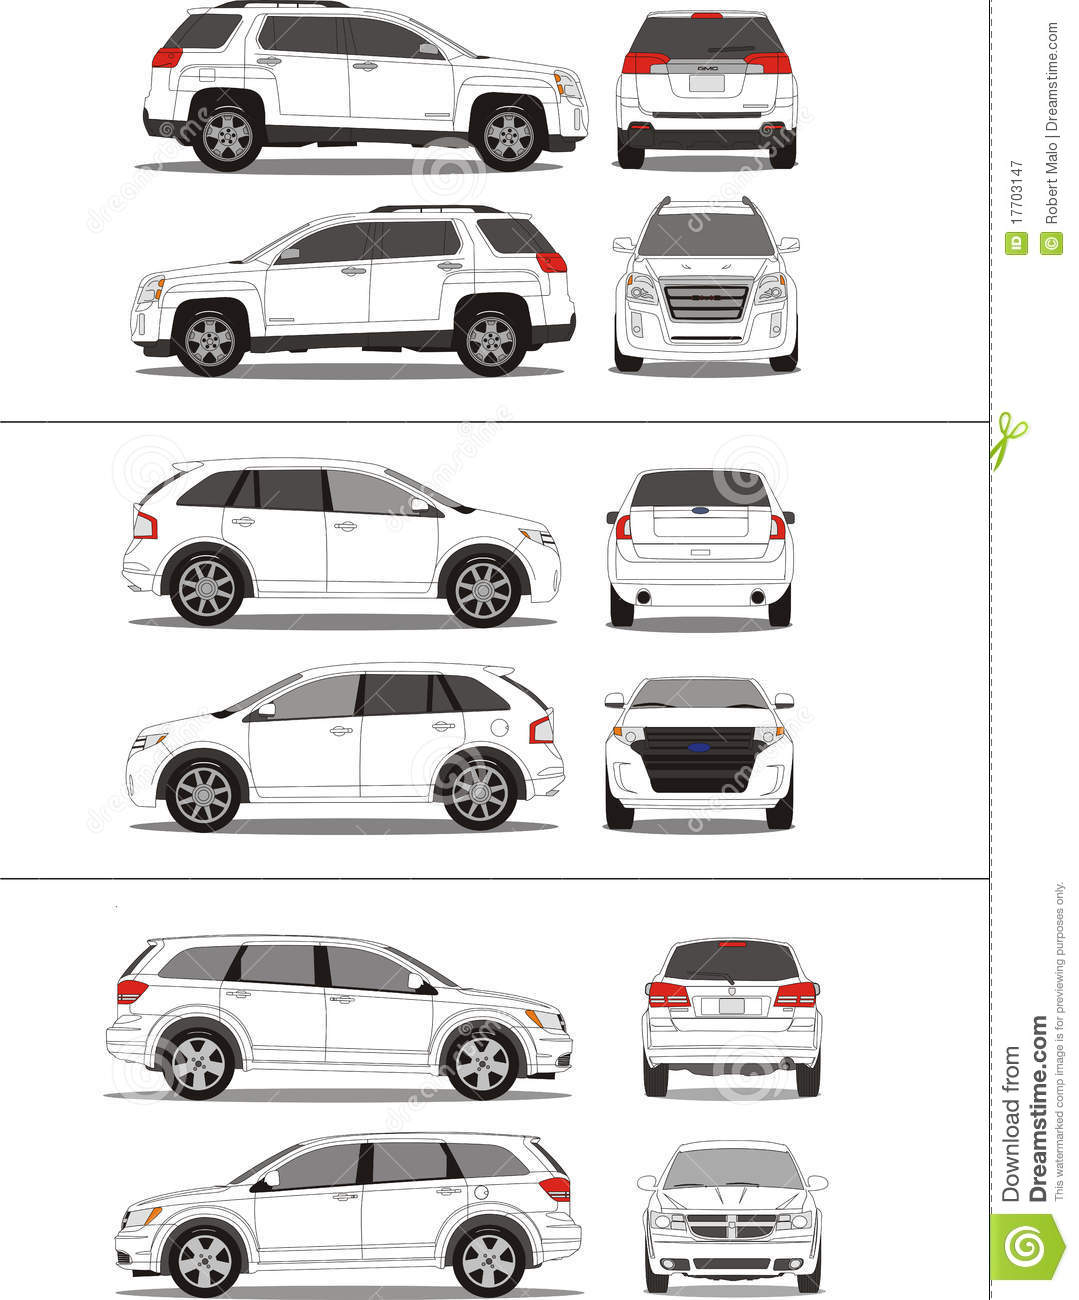 American suv vehicle outline royalty free stock photography image 17703147 for Free vehicle templates vector